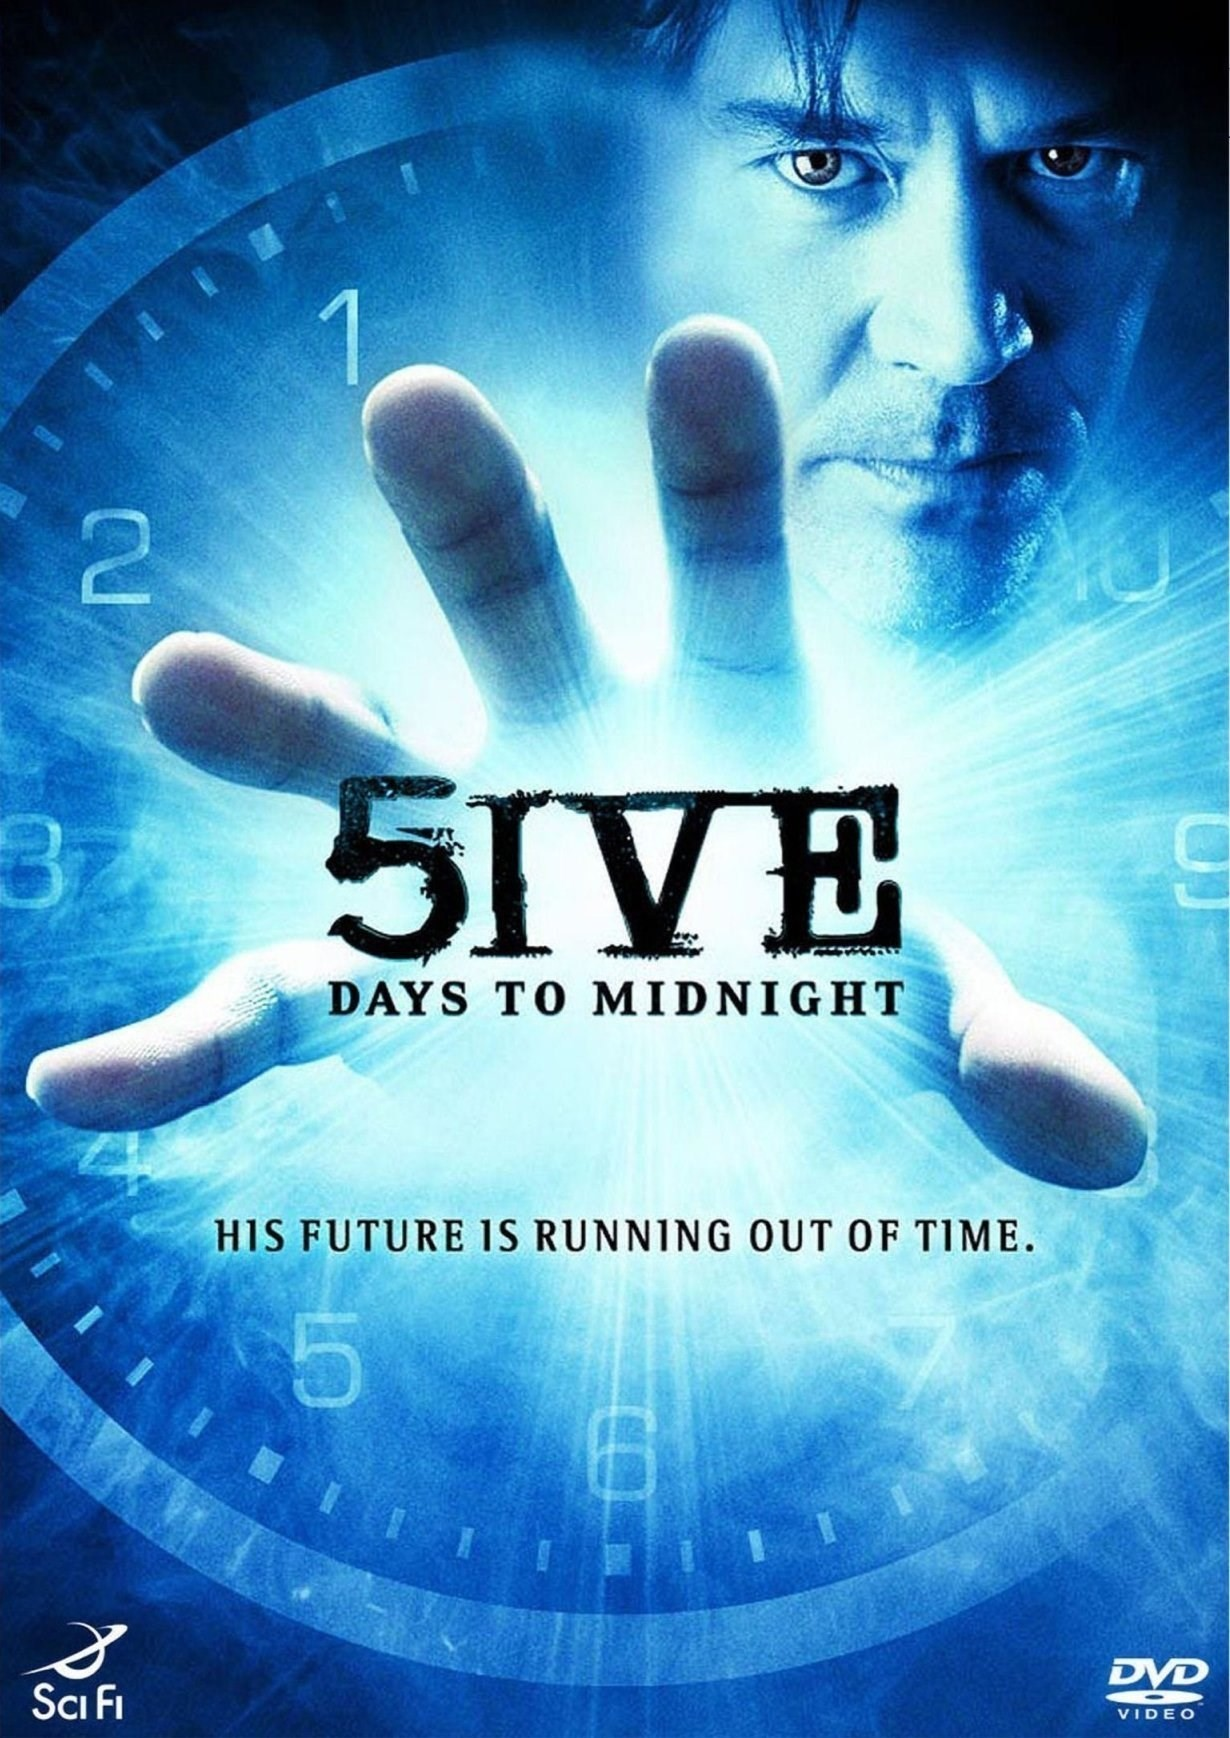 5ive Days to Midnight (2004) TV Mini-Series